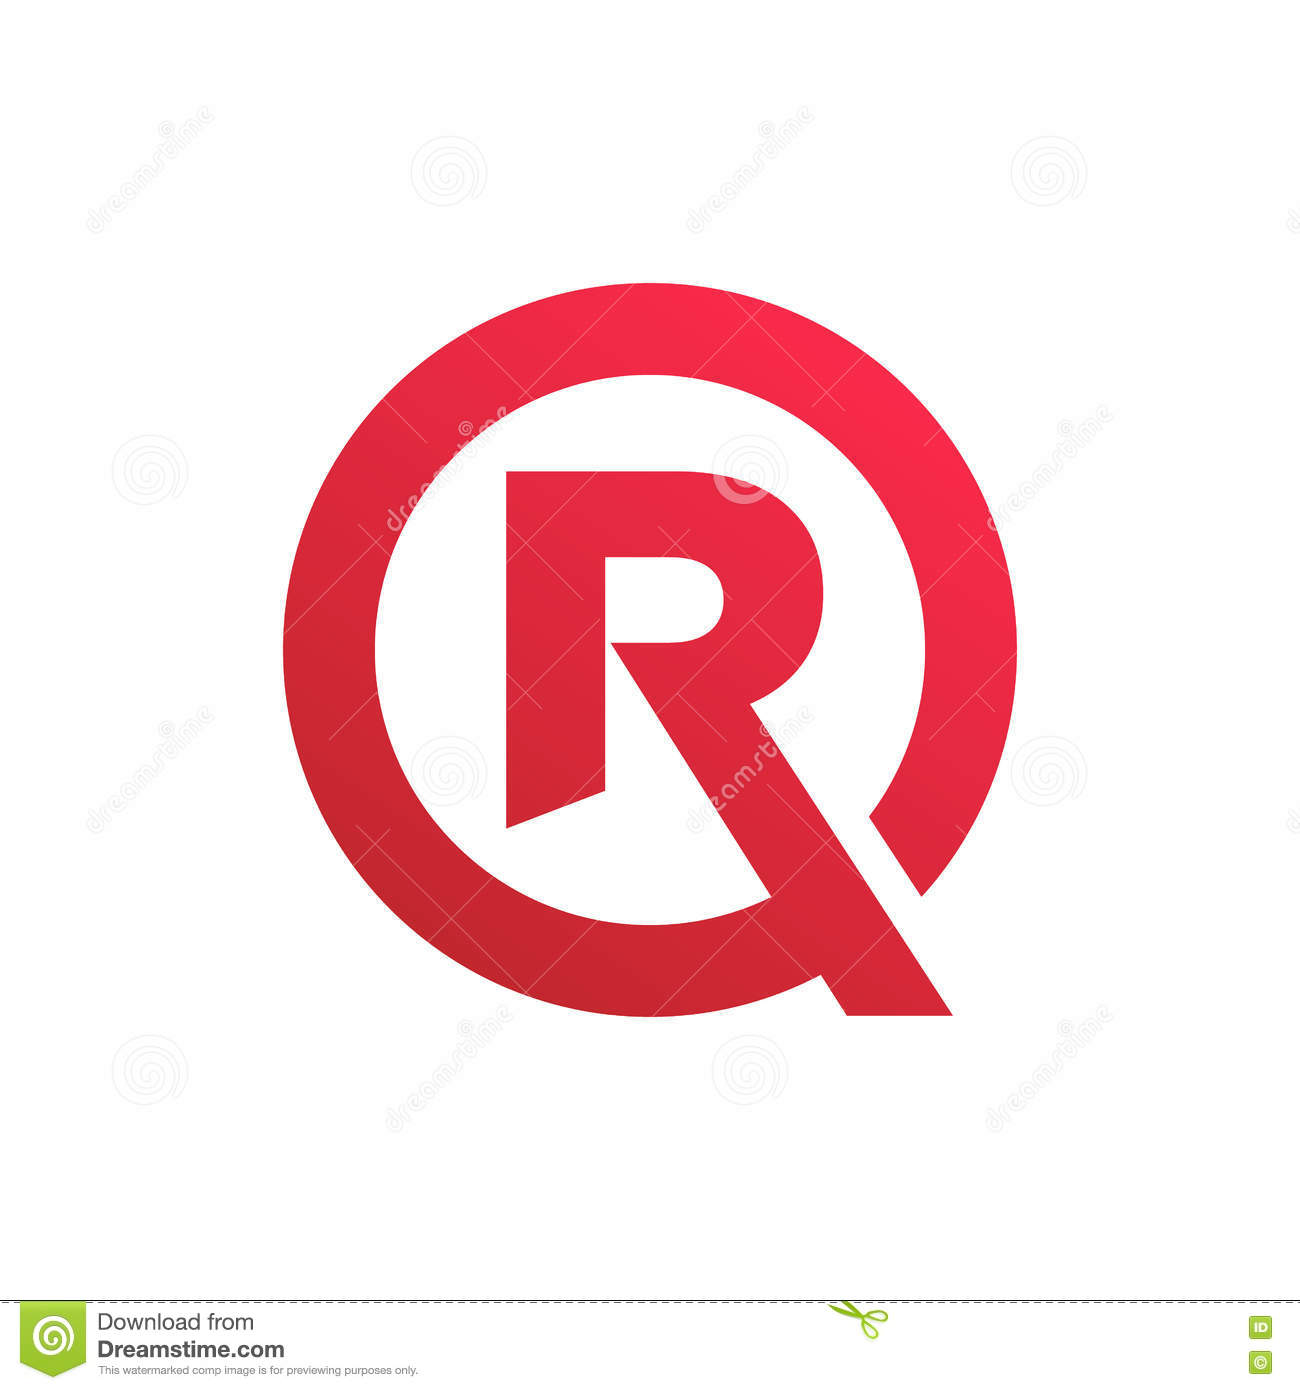 Stylish Letter R Symbol  Creative Design. Stylish Letter R Symbol  Creative Design Stock Illustration